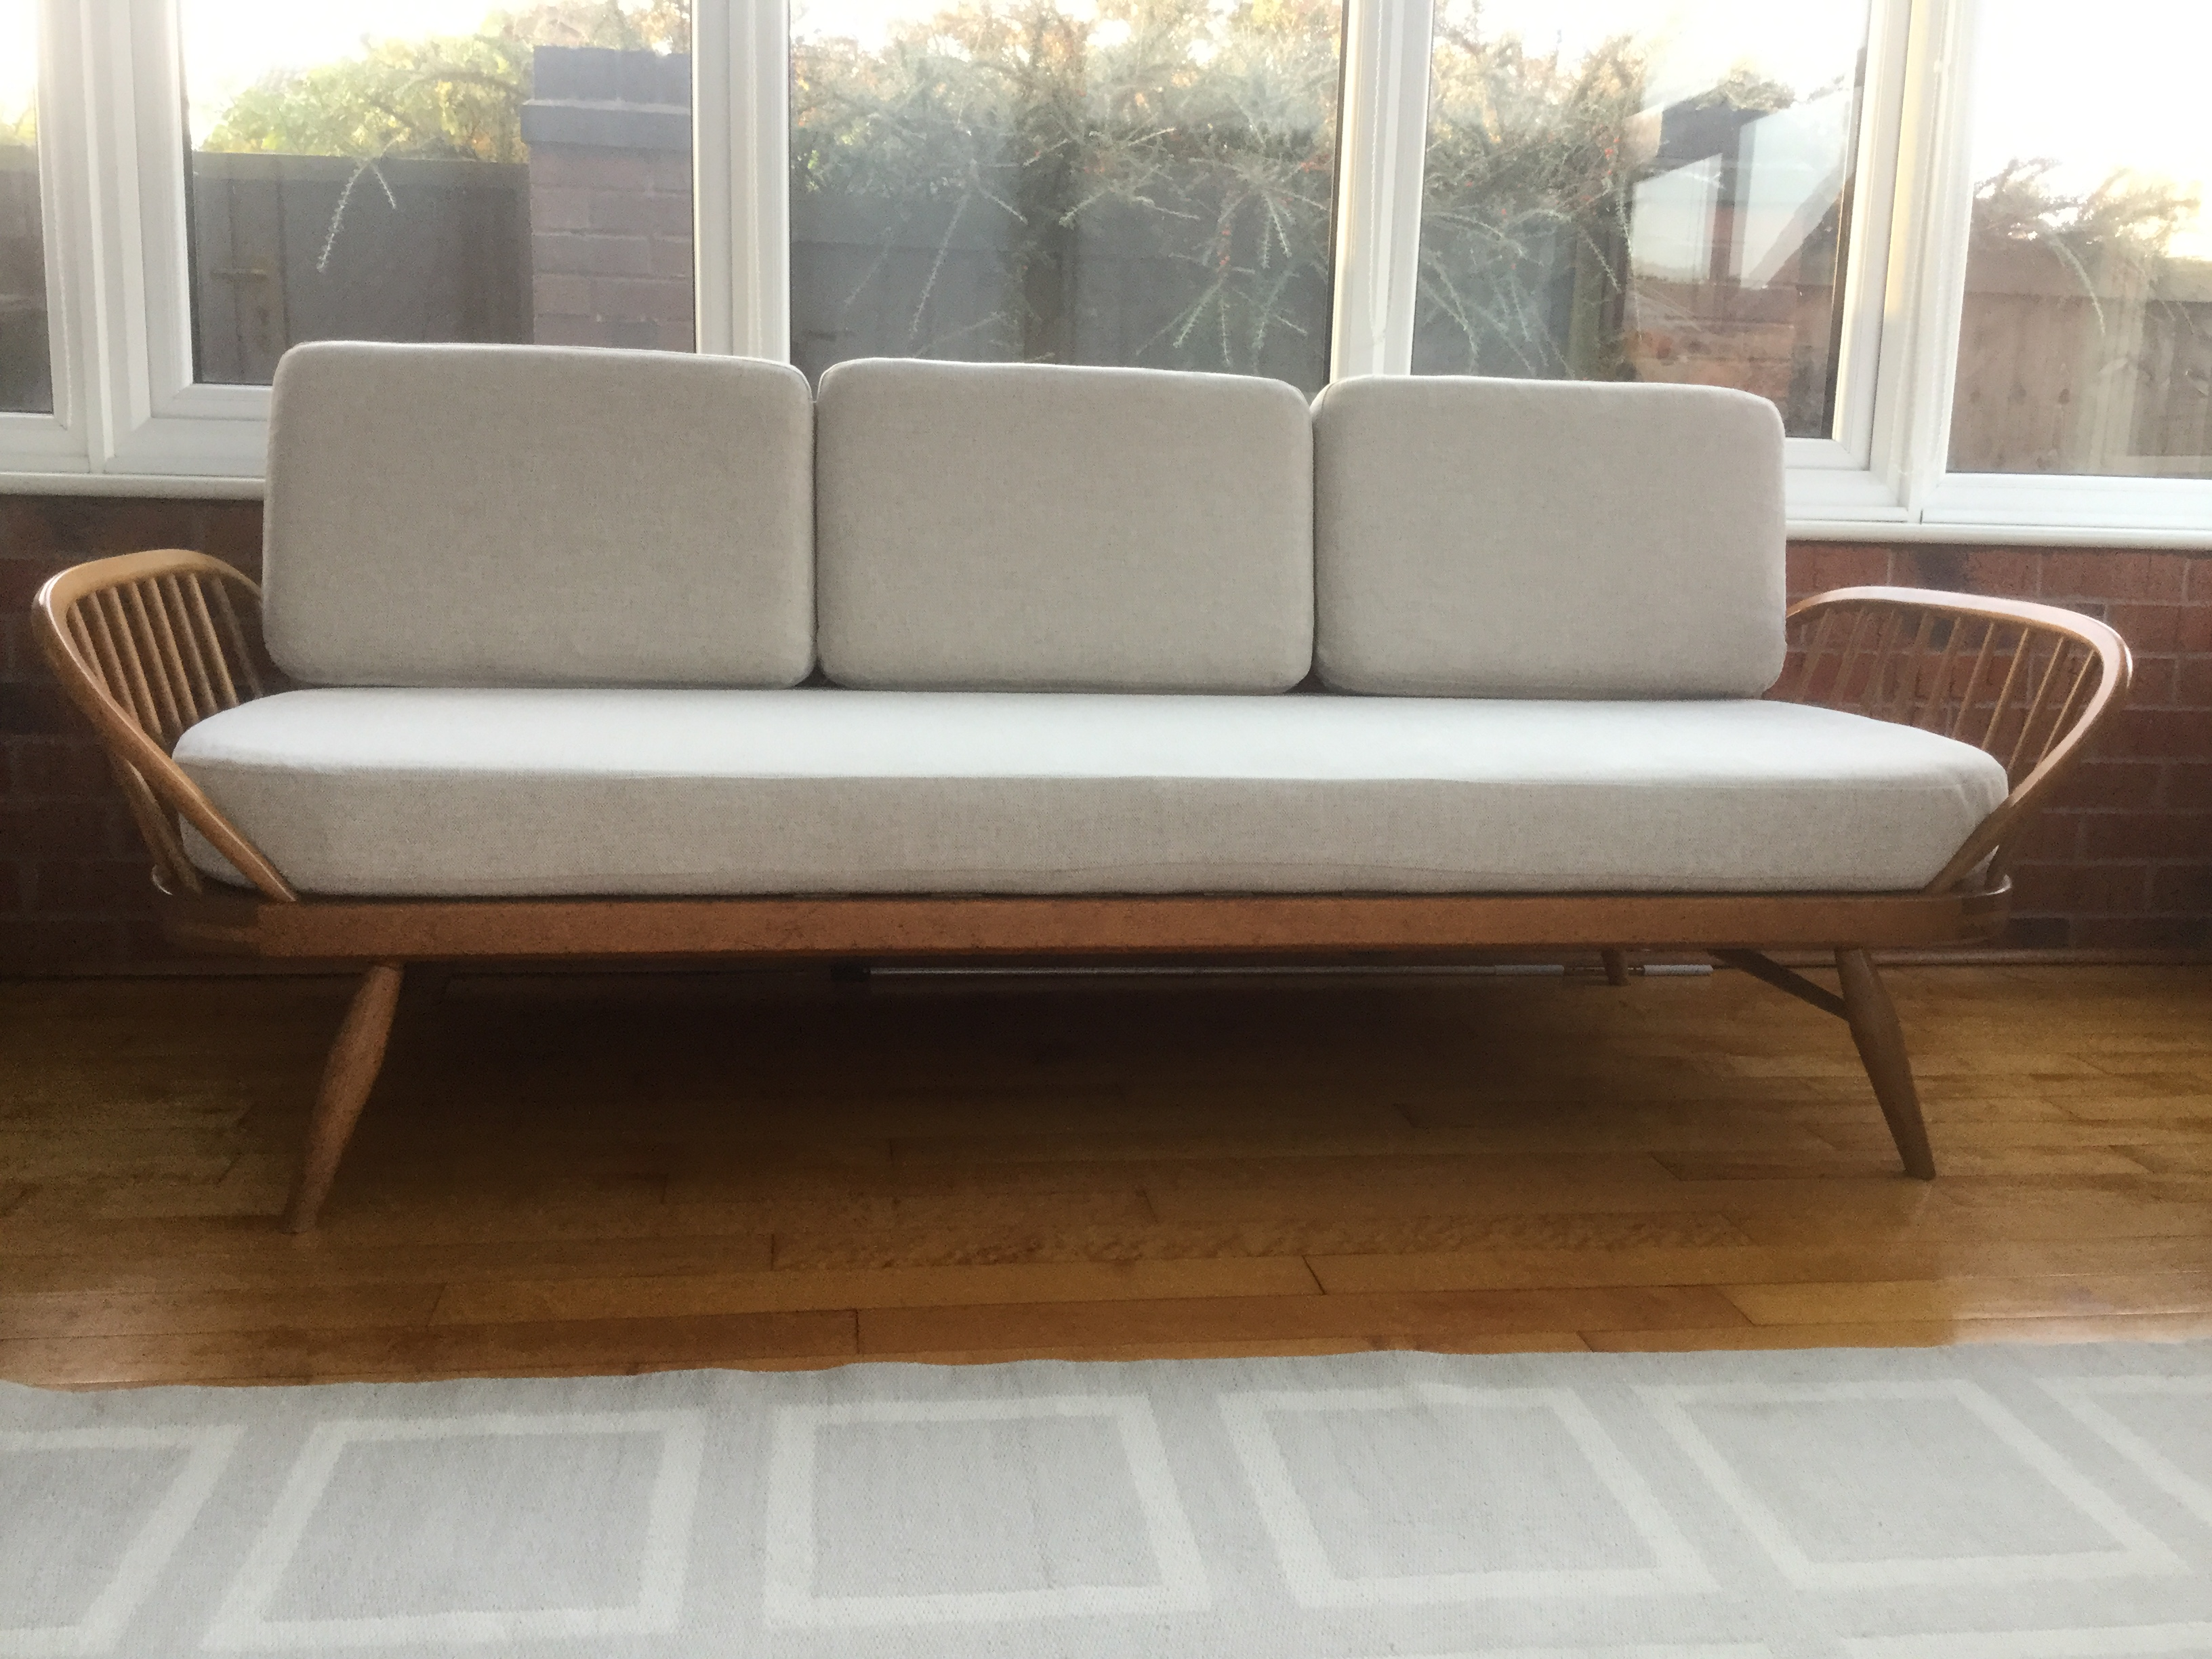 Ercol Daybed C